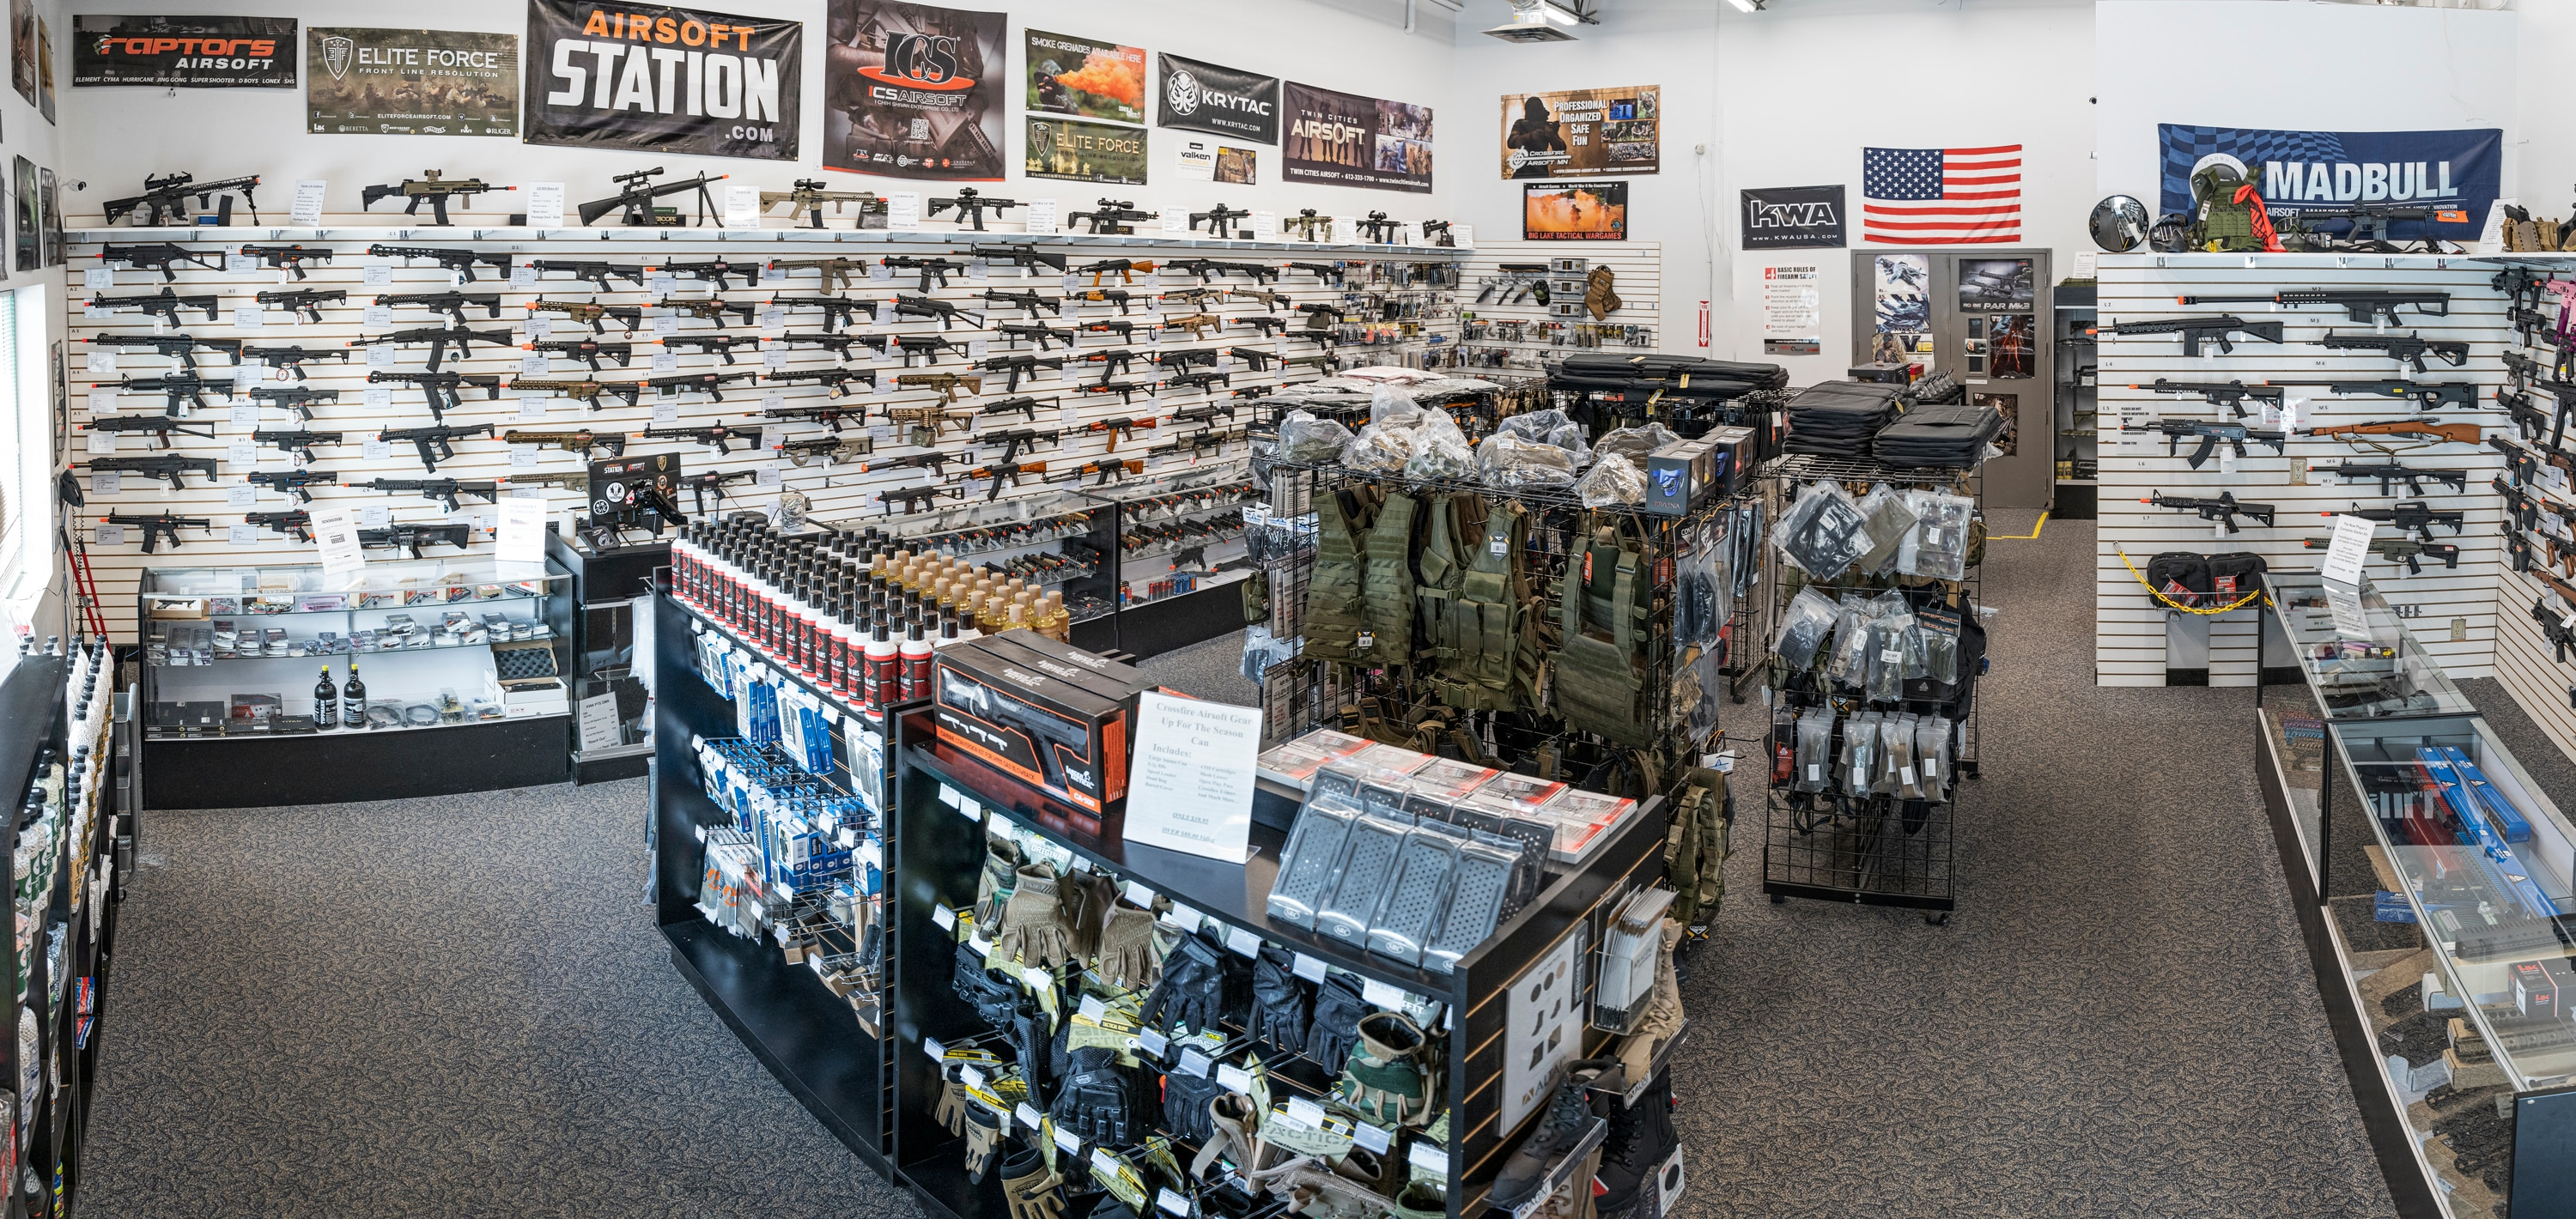 Airsoft Station's Minnesota Retail Store